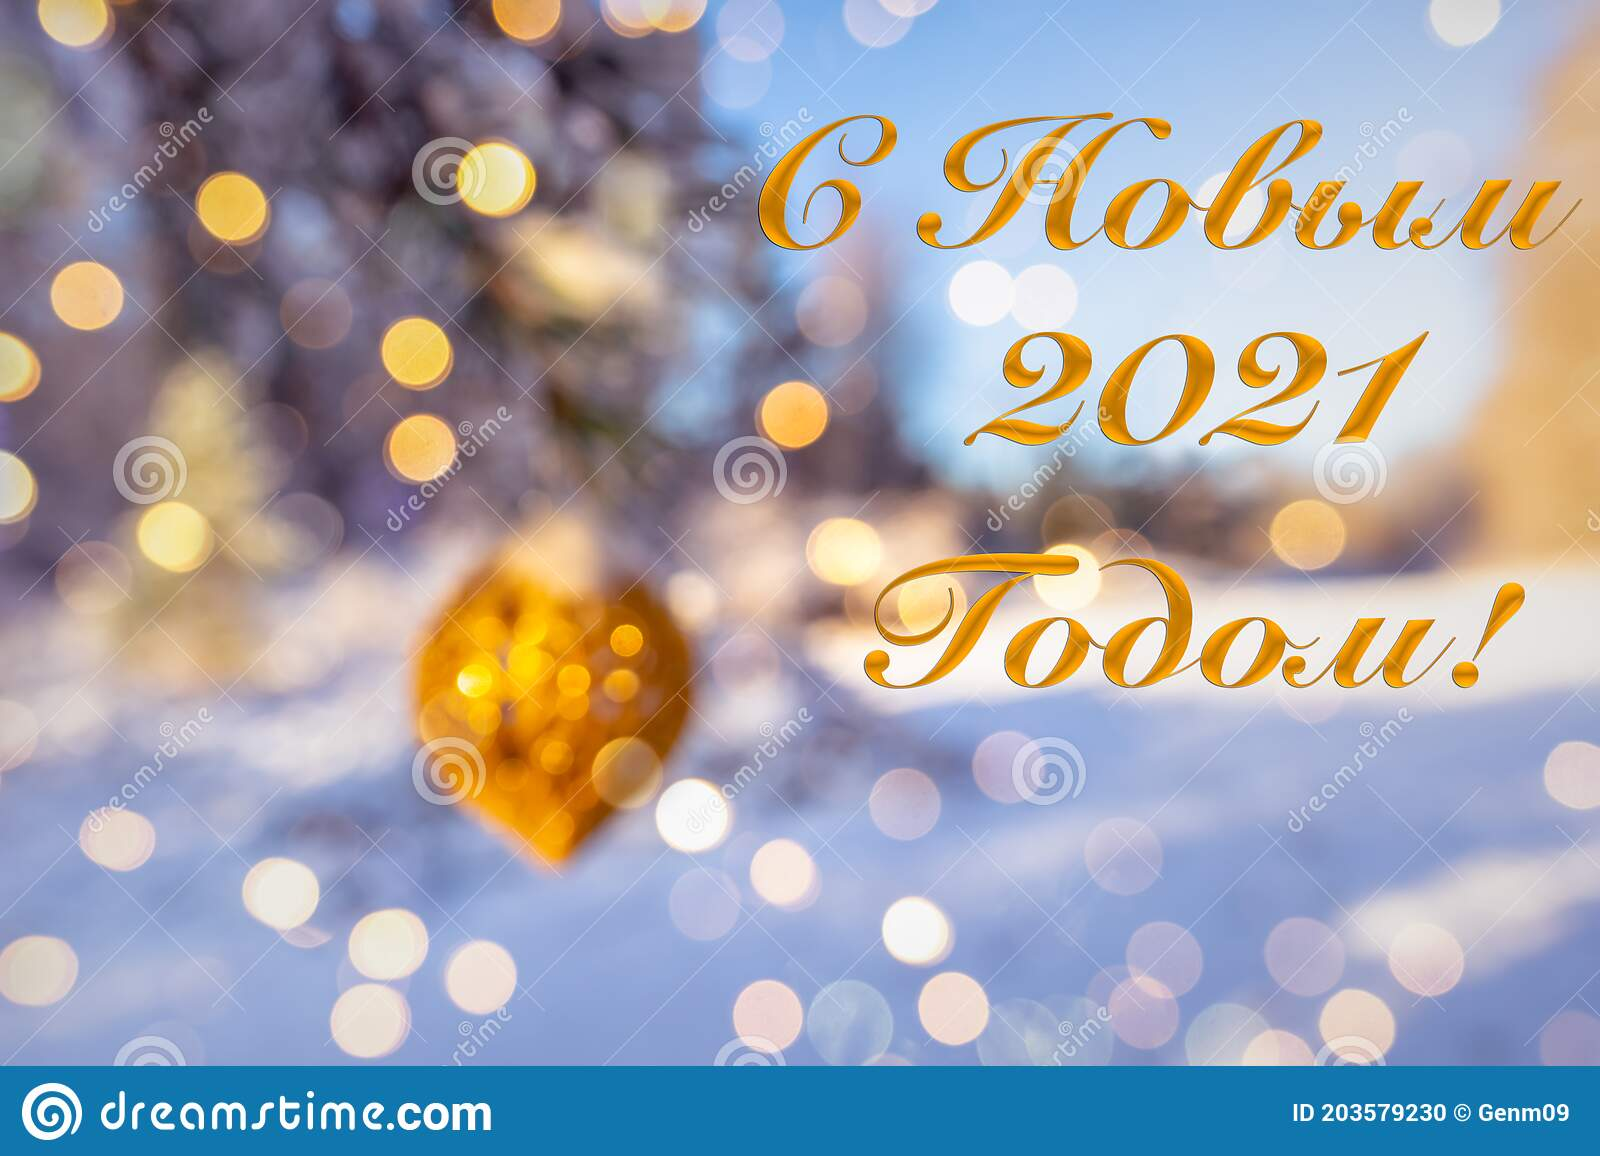 Russian Christmas 2021 Happy New Year 2021 Text Written By Cyrillic In Russian Blurred Background Of Christmas Tree In Snow Decorated With Big Golden Ba Stock Photo Image Of December Backdrop 203579230